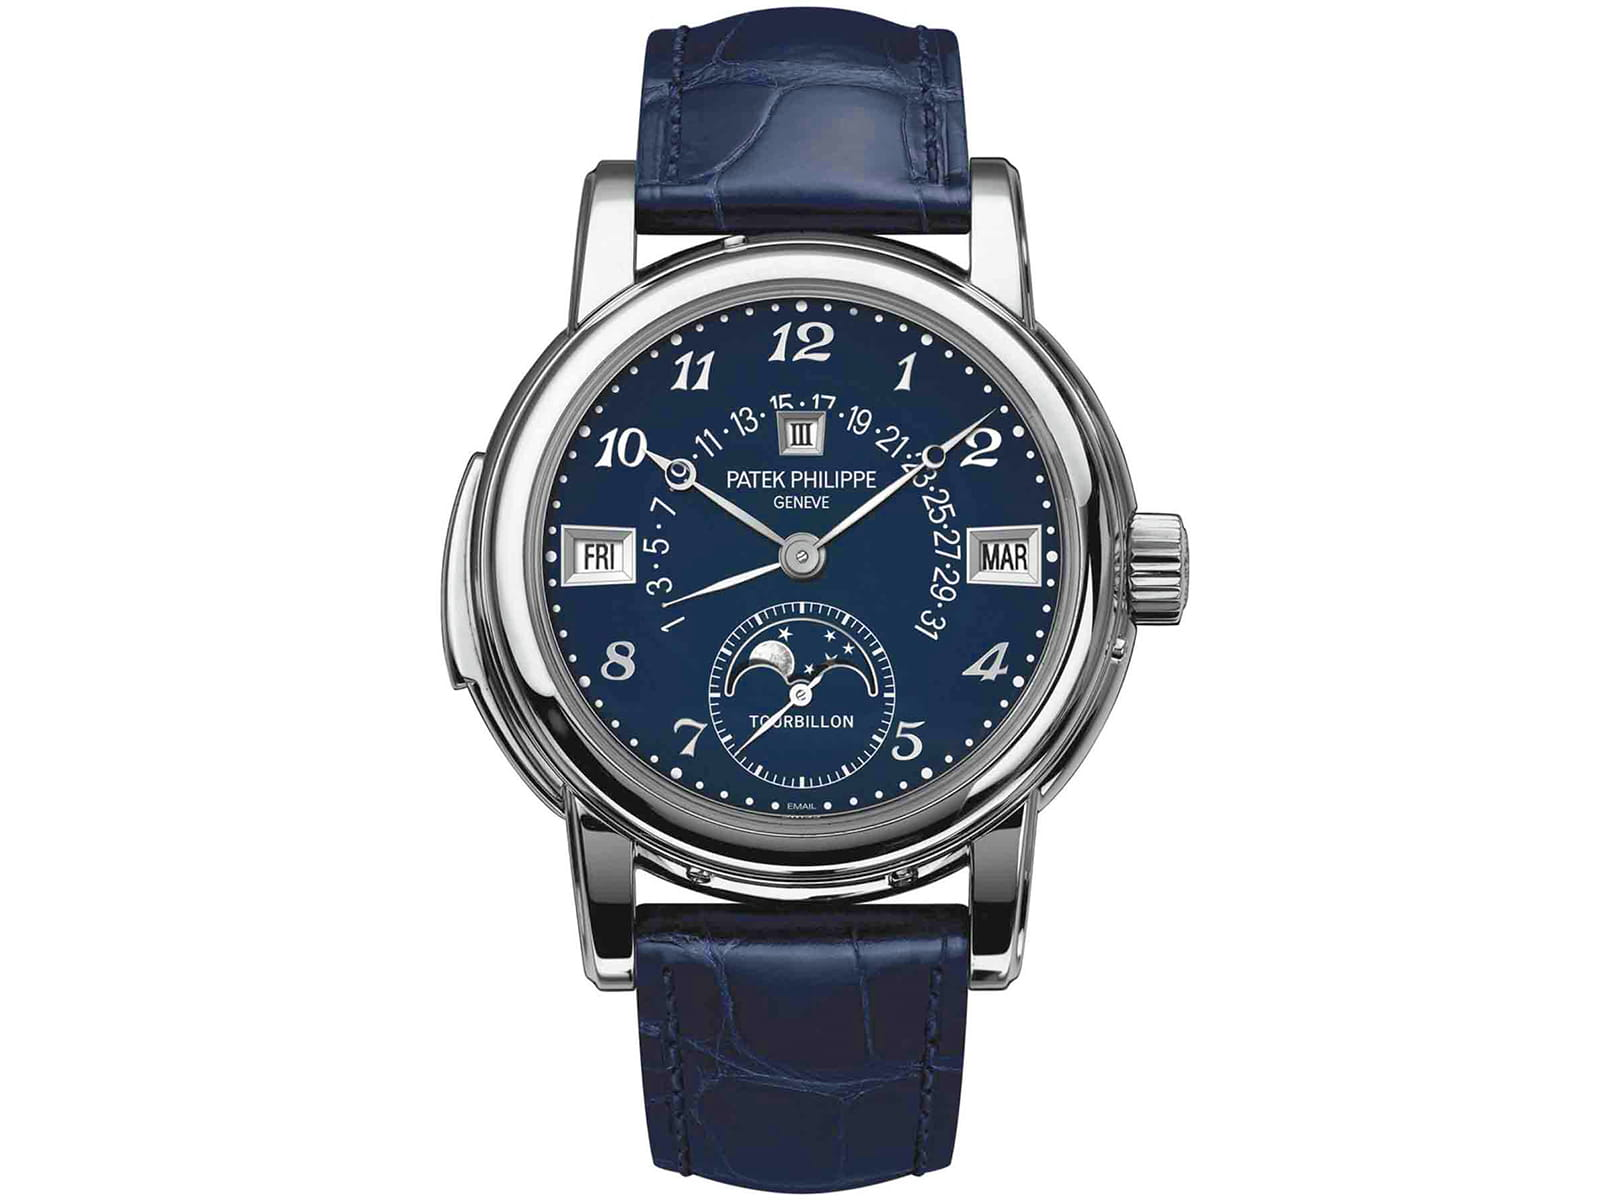 5016a-010-patek-philippe-5016a-only-watch-2015.jpg